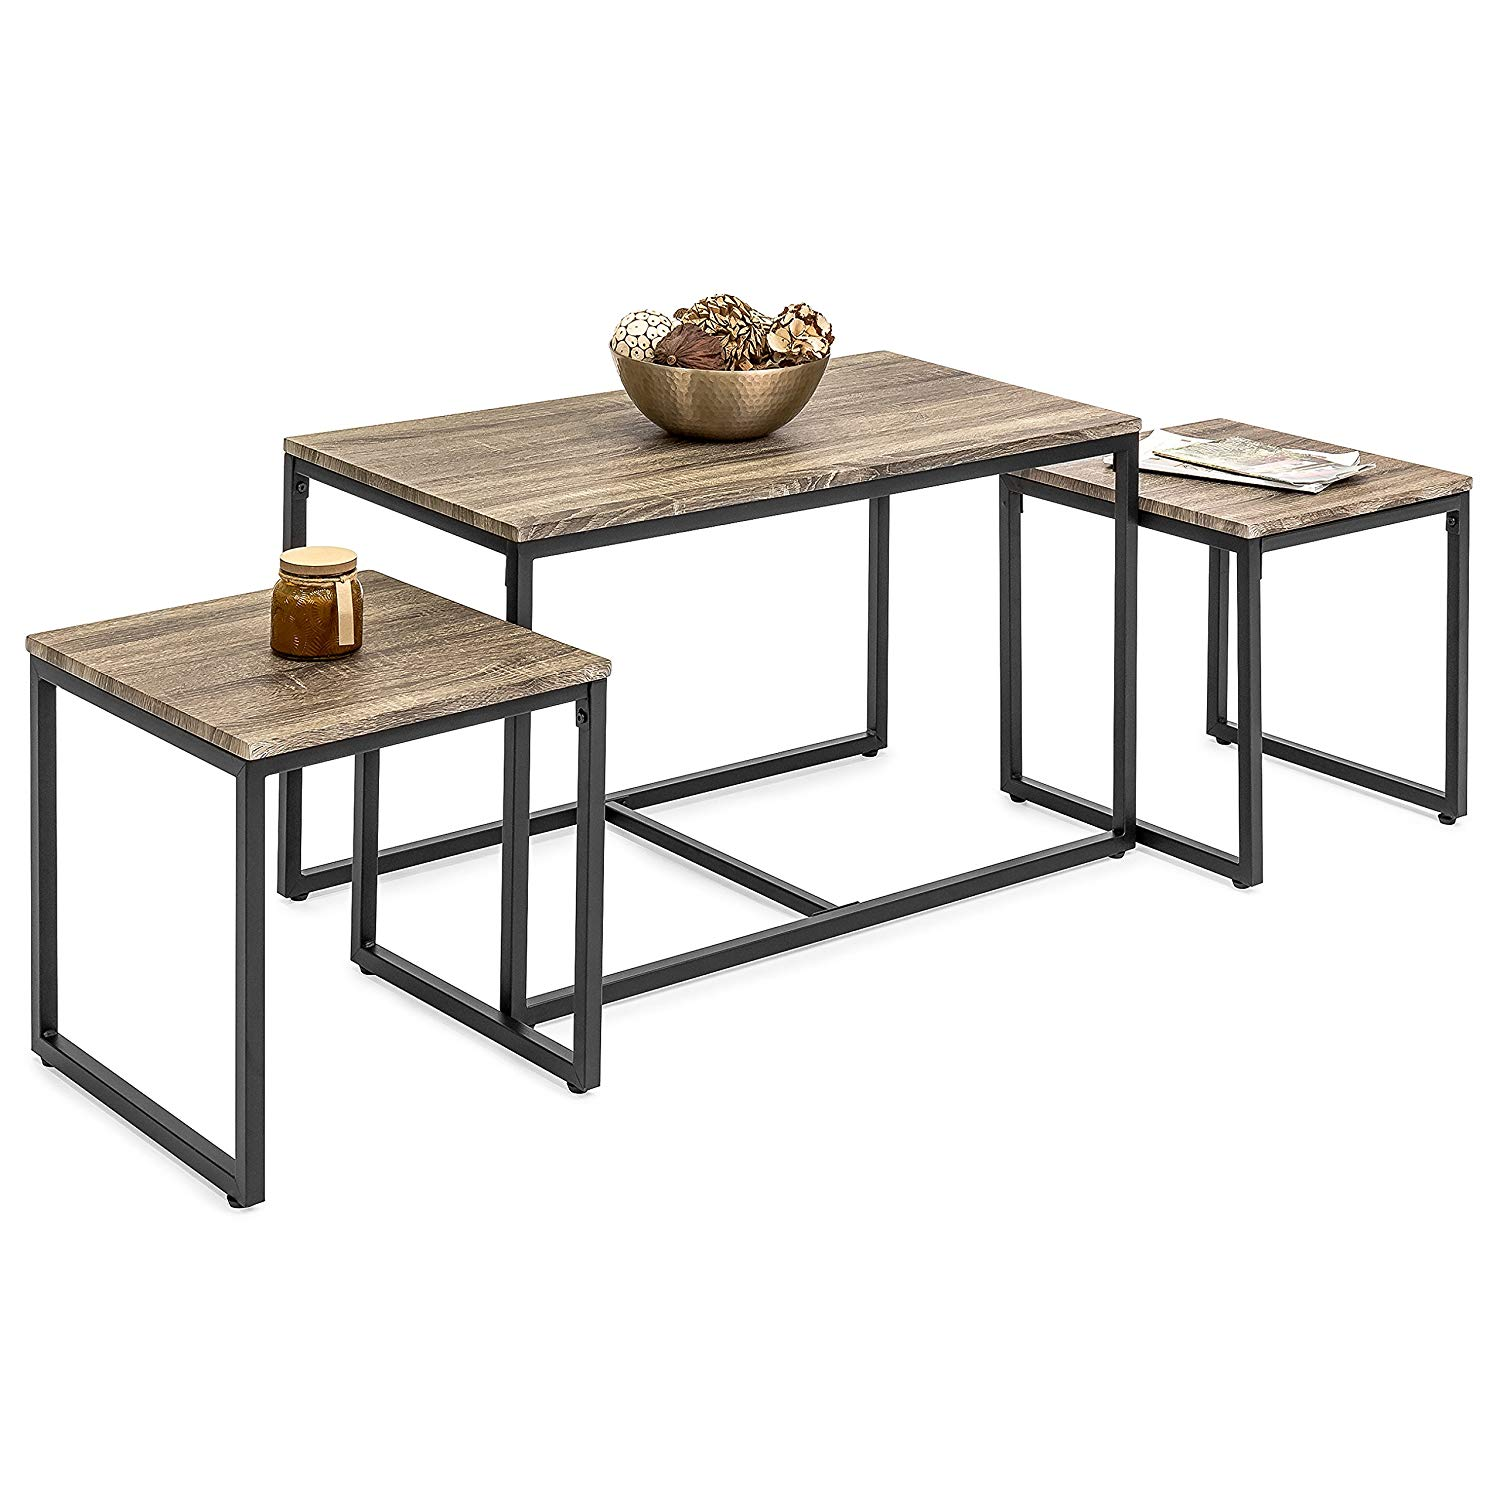 best choice products piece modern lightweight nesting kitchen accent table coffee living room furniture lounge set end tables brown orange lamp small patio plans white and silver